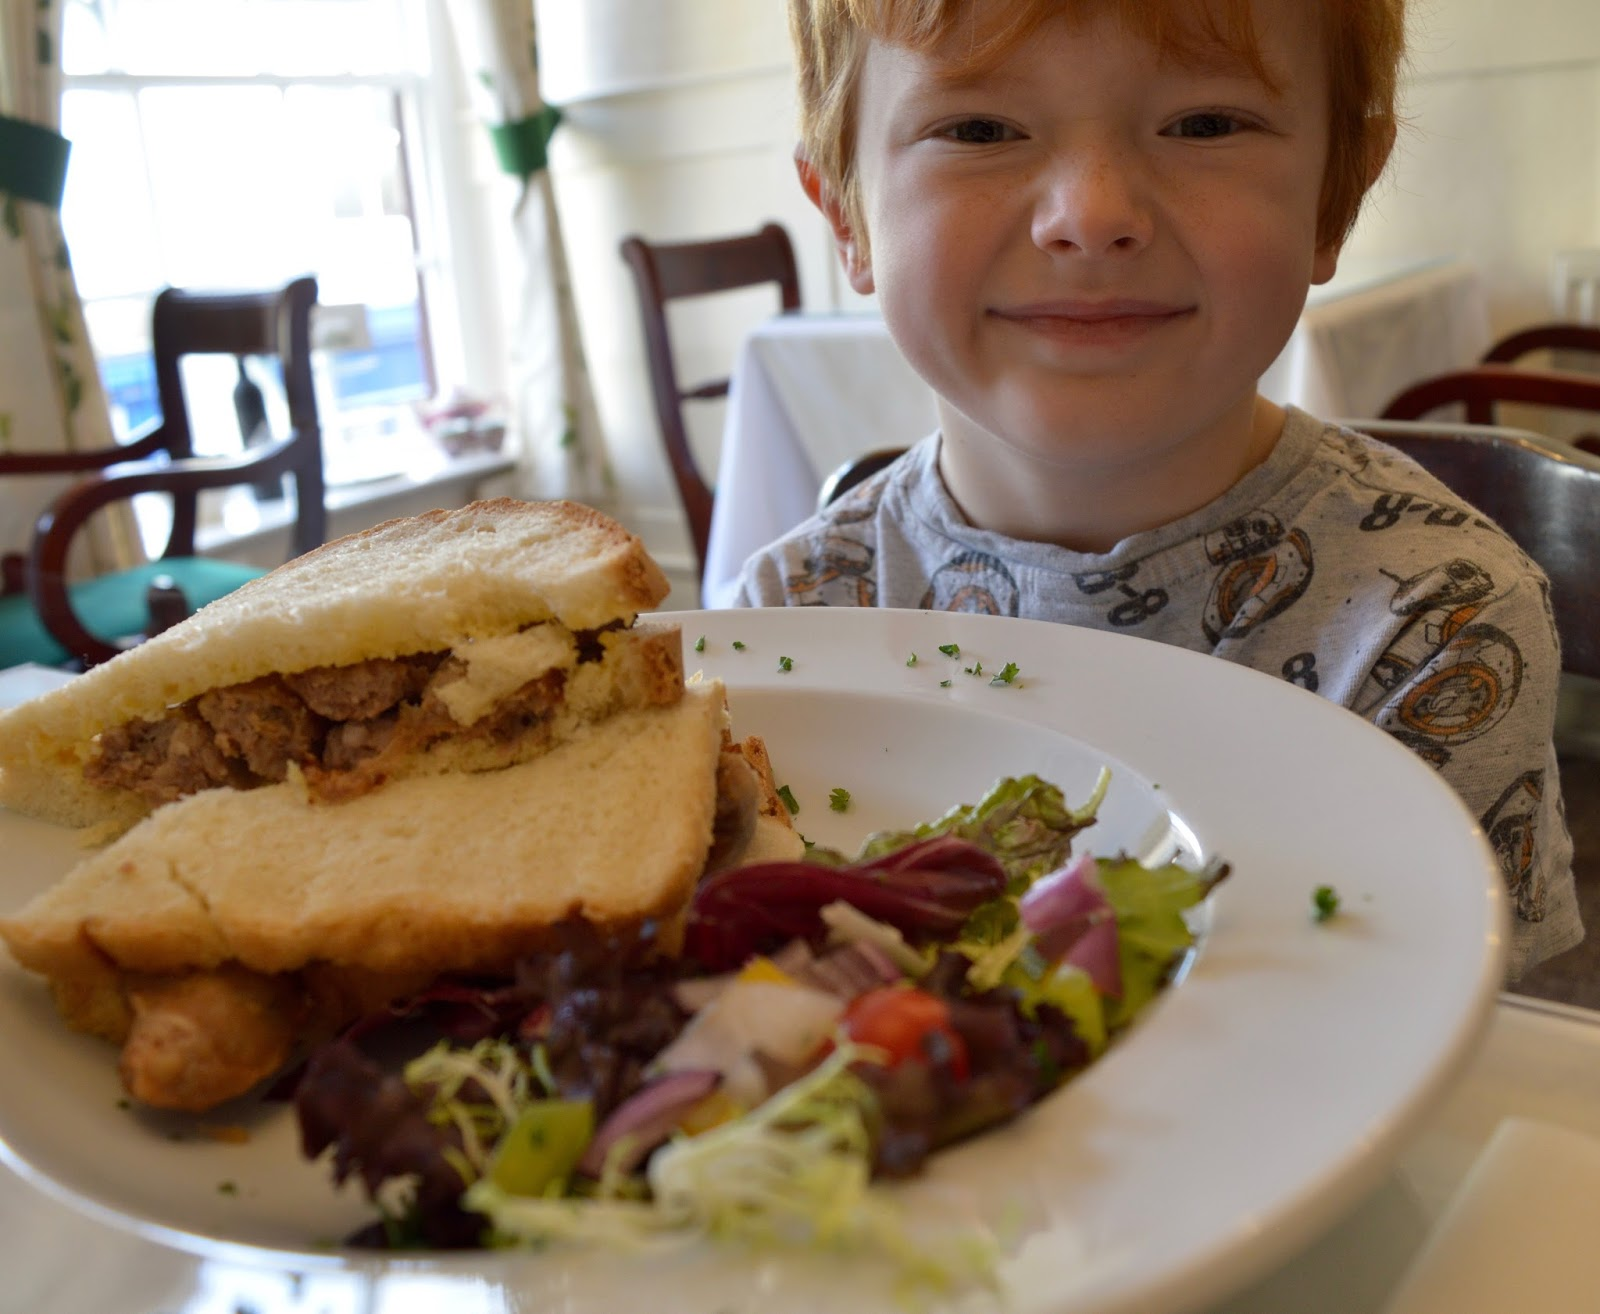 A weekend break in Richmond, North Yorkshire | What to do with the kids - Duncan's Tearoom breakfast menu  sausage sandwich